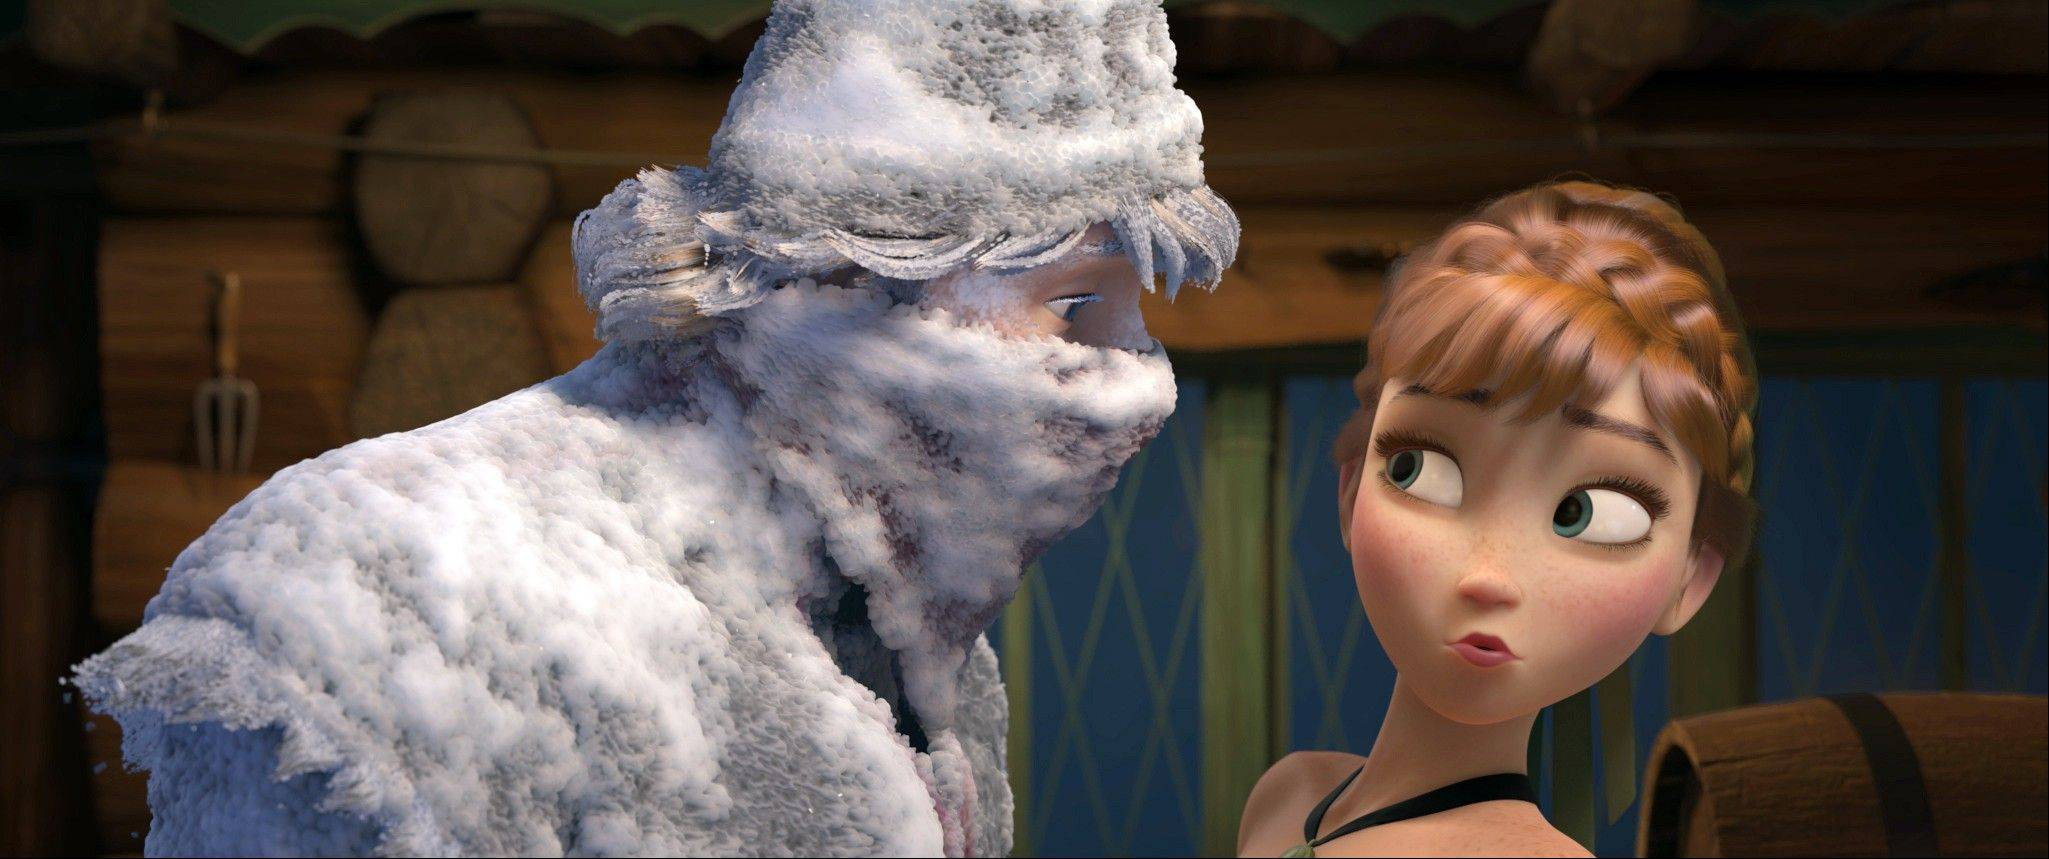 Disney�s �Frozen,� with Kristoff, voiced by Jonathan Groff, and Anna, voiced by Kristen Bell, won the top animation honors at the 41st Annie Awards.